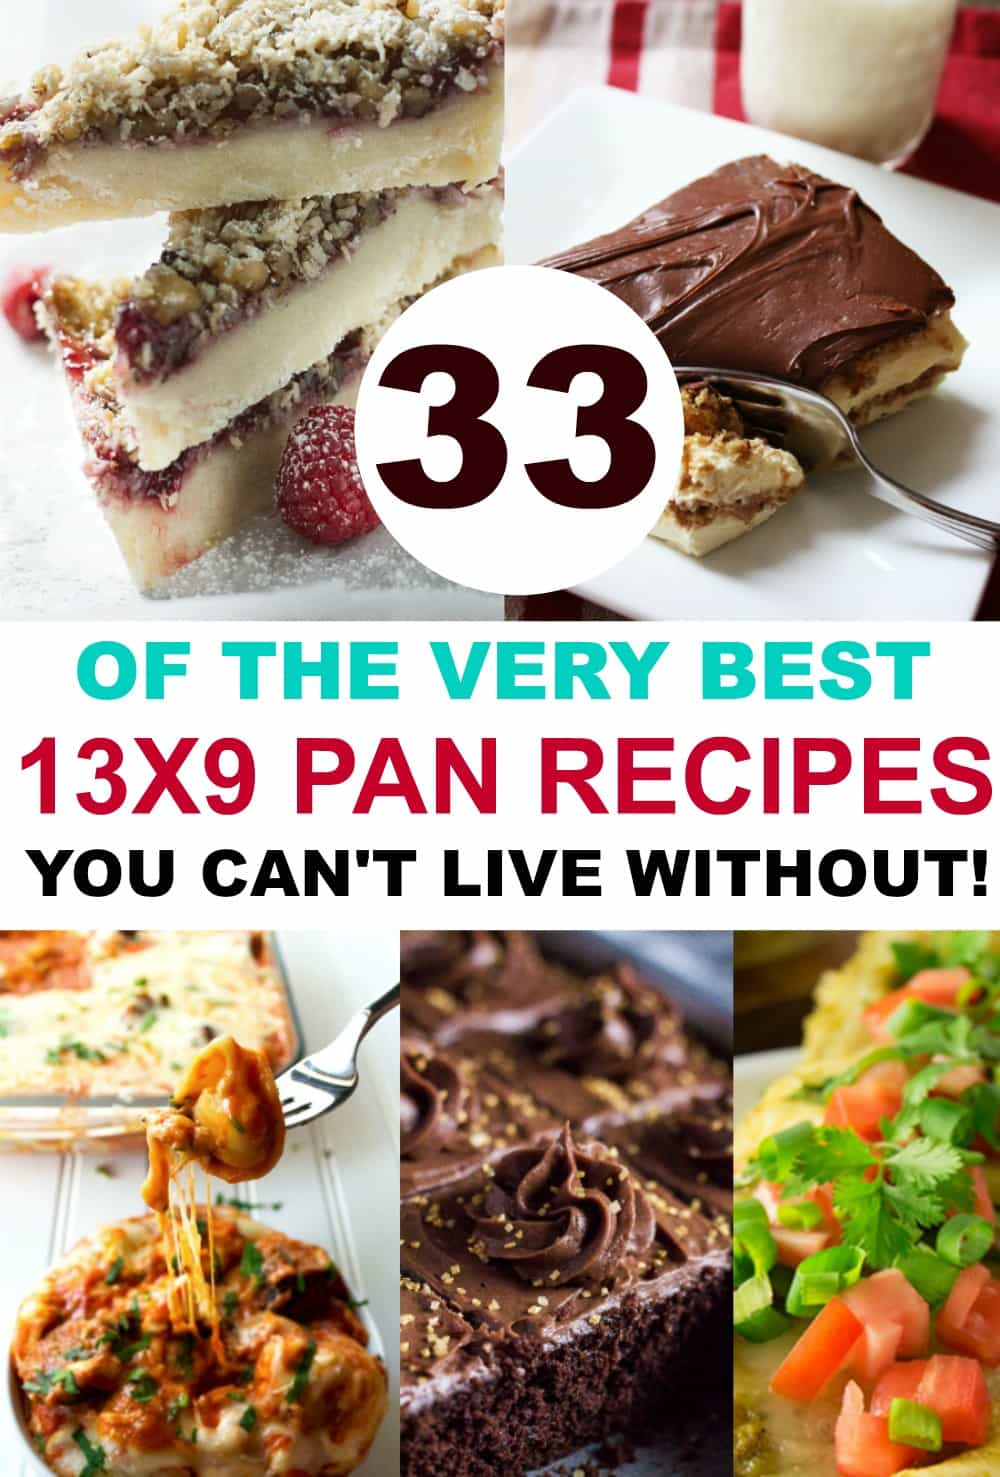 13 X 9 Baking   33 Recipes You Can't Live Without!